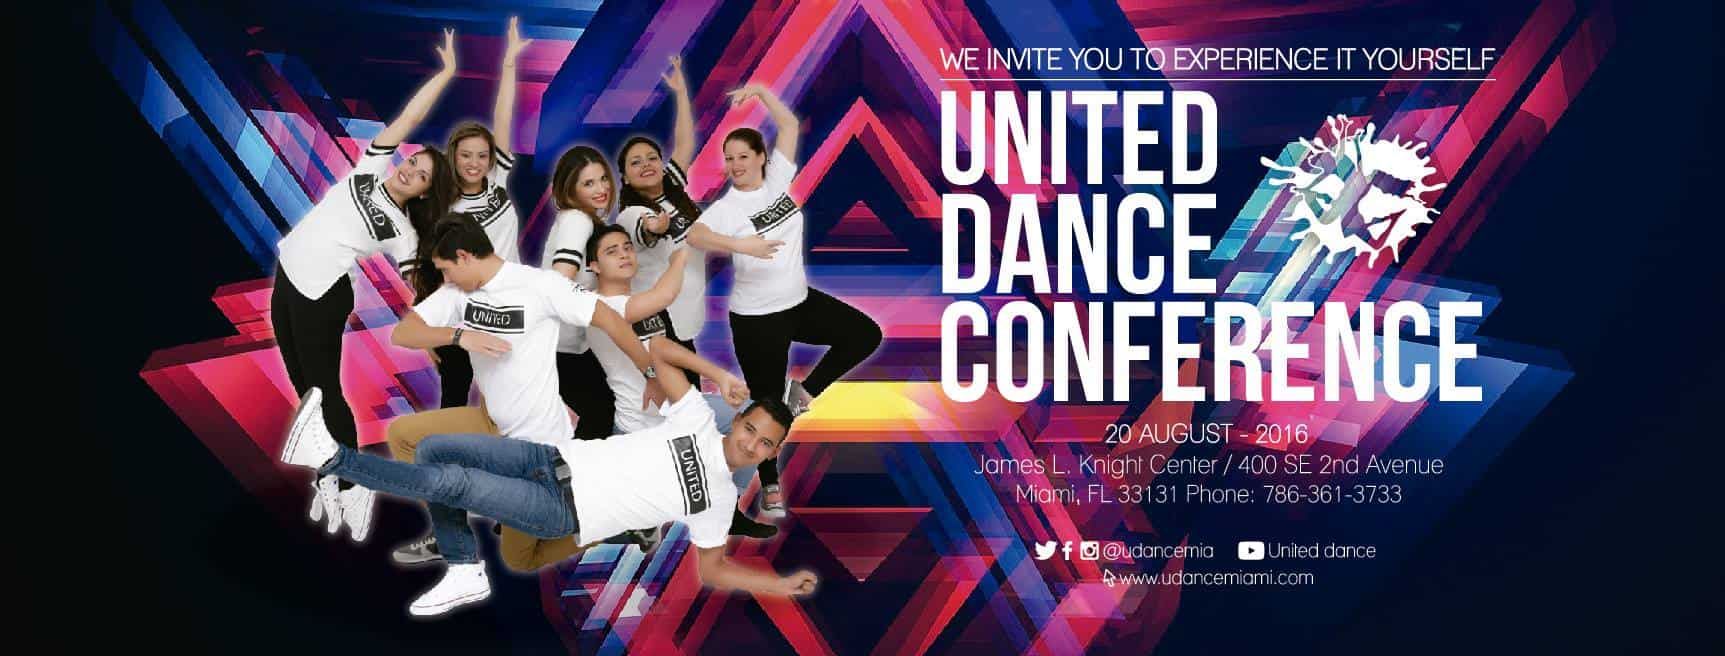 13063029 1024988084215808 3058704589659519802 o - United Dance Conference 2016